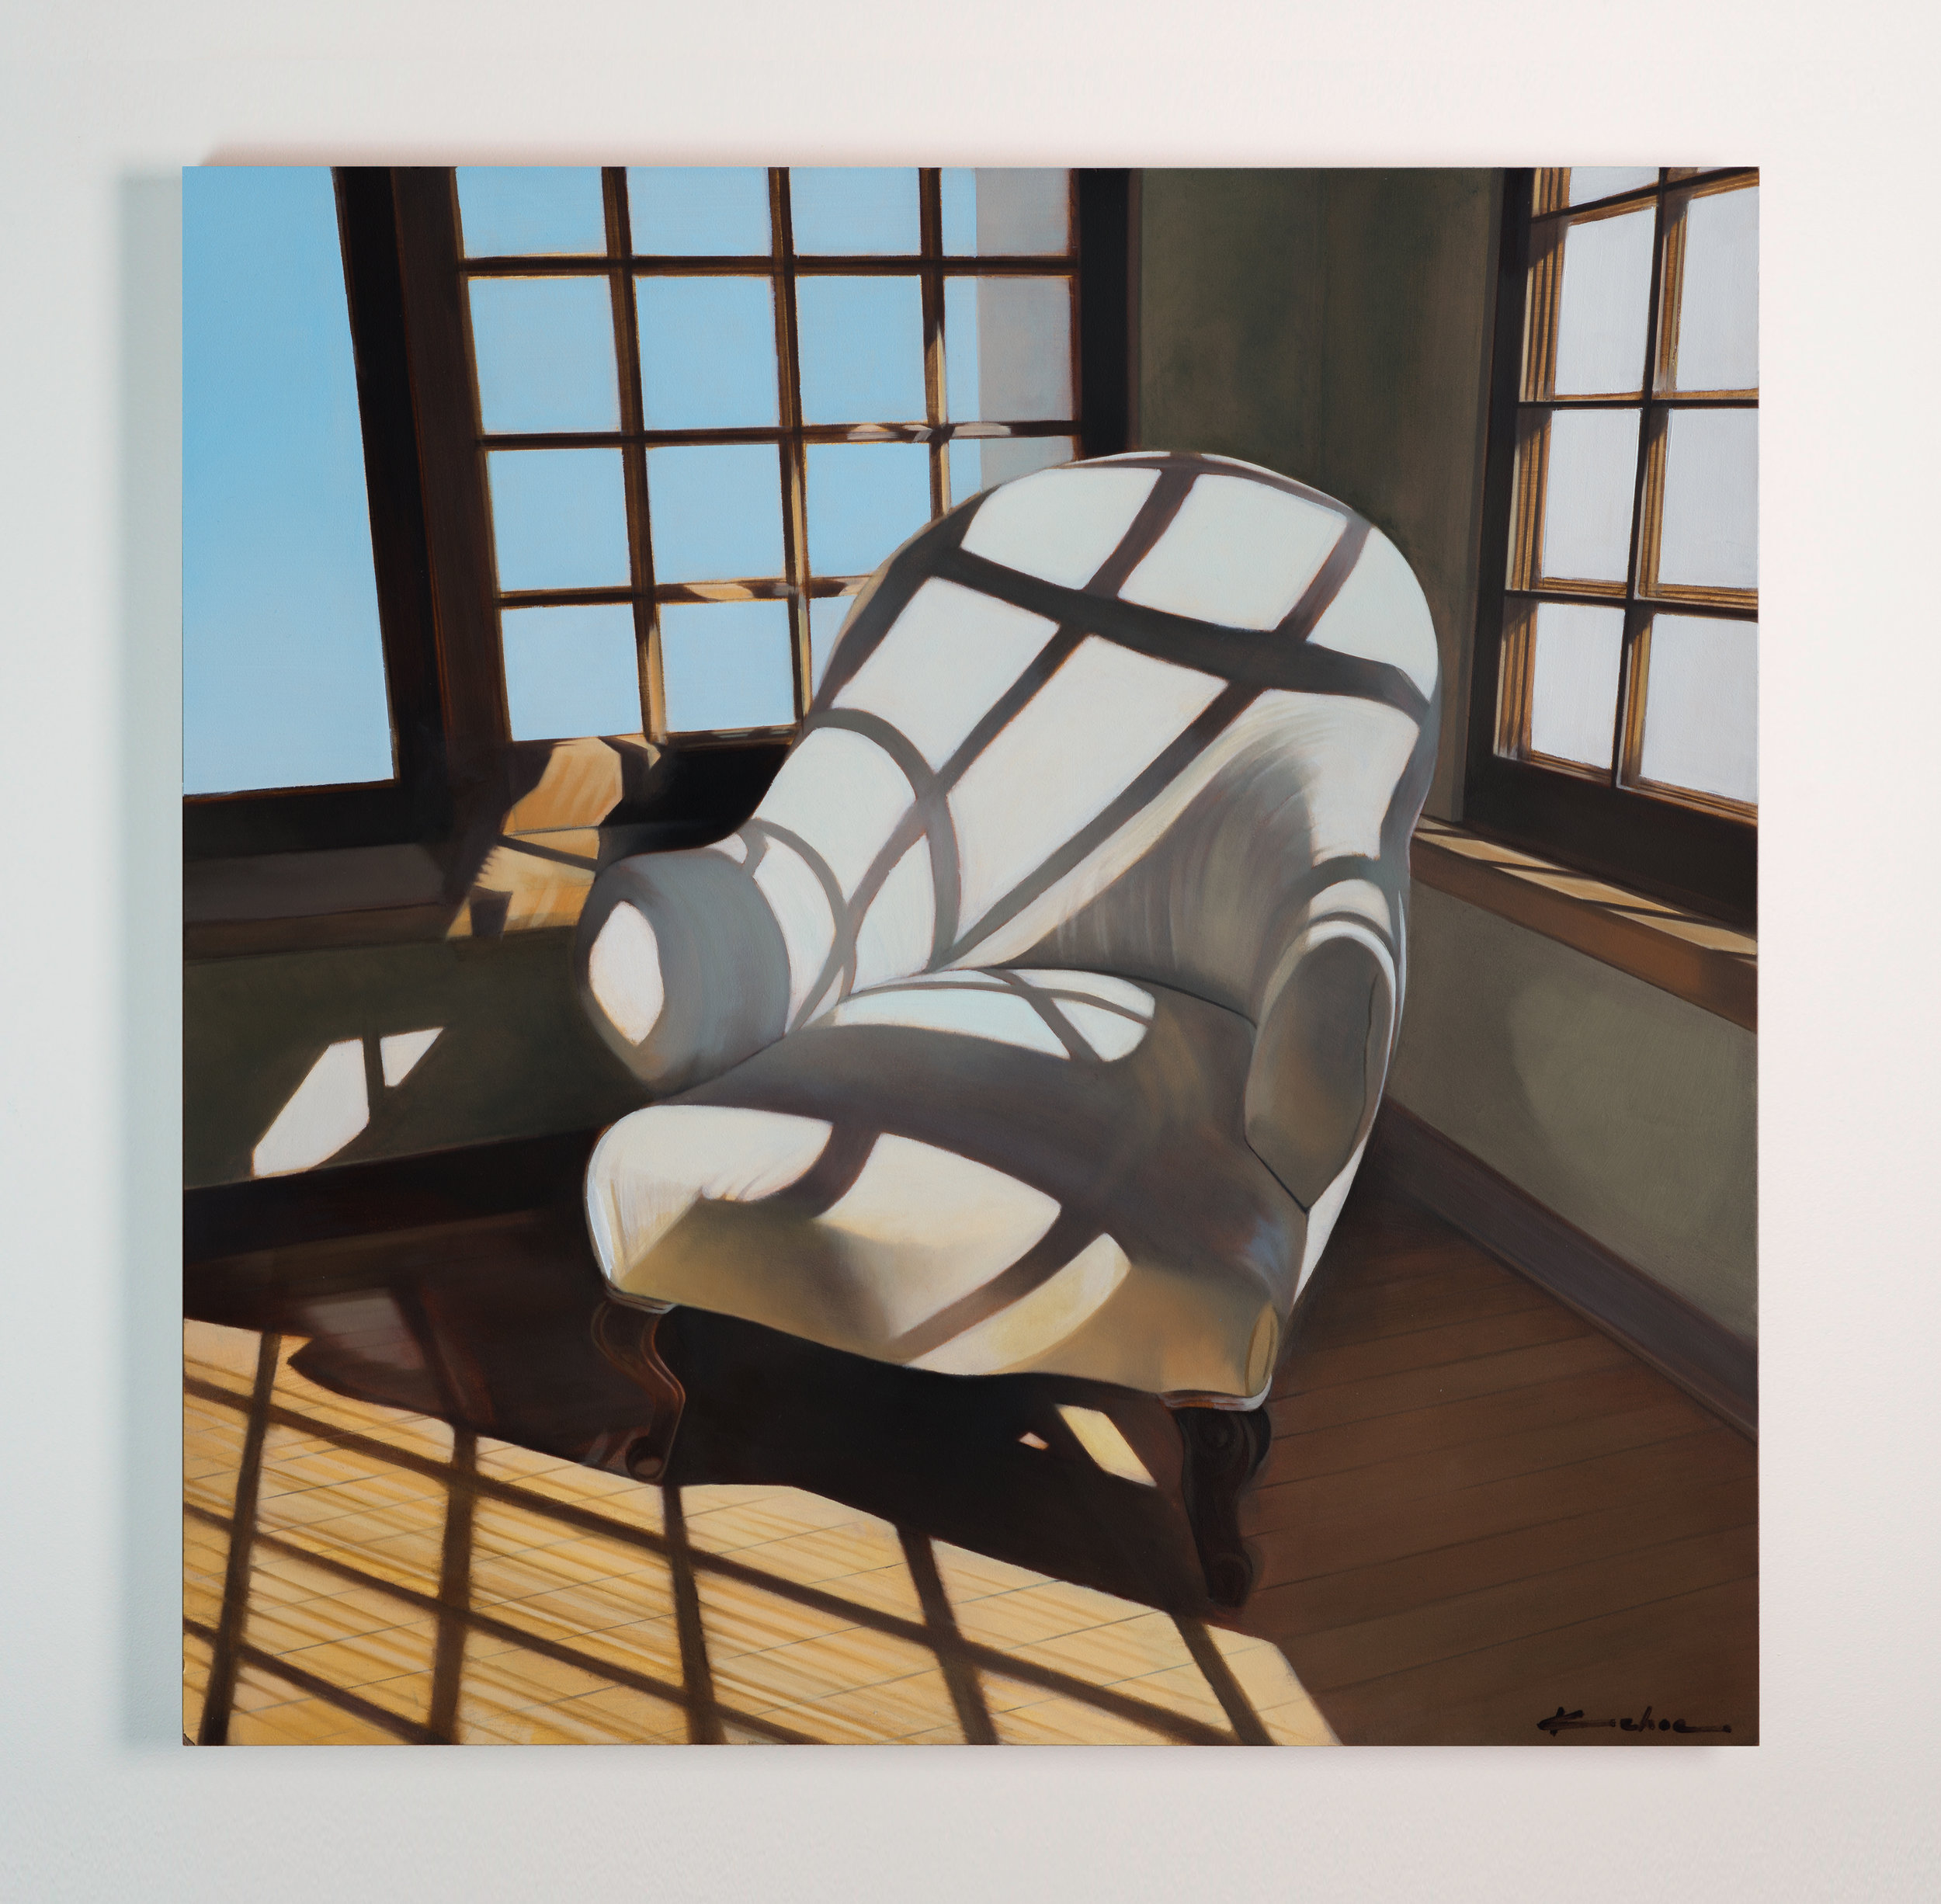 """SOLD  THE ALBUQUERQUE MUSEUM'S ARTS THRIVE EXHIBIT OCT. 21 THROUGH DECEMBER 4TH  Title: FECHIN'S CHAIR  15 X 15, Oil on Board  The Taos Art Museum in New Mexico resides in the former studio of Nicolai Fechin, one of New Mexico's most recognized painters. As I toured the unique Russian-Pueblo structure that Fechin designed and built much of by hand, I was struck by one of the artist's """"thinking"""" chairs in the corner with late afternoon long shadows and beautiful light raking across it. I did a few thumbnail sketches to figure out what the composition was calling for and came away with a few reference images that I thought would make a successful small painting while paying a small tribute to the mastery of Nicolai Fechin."""